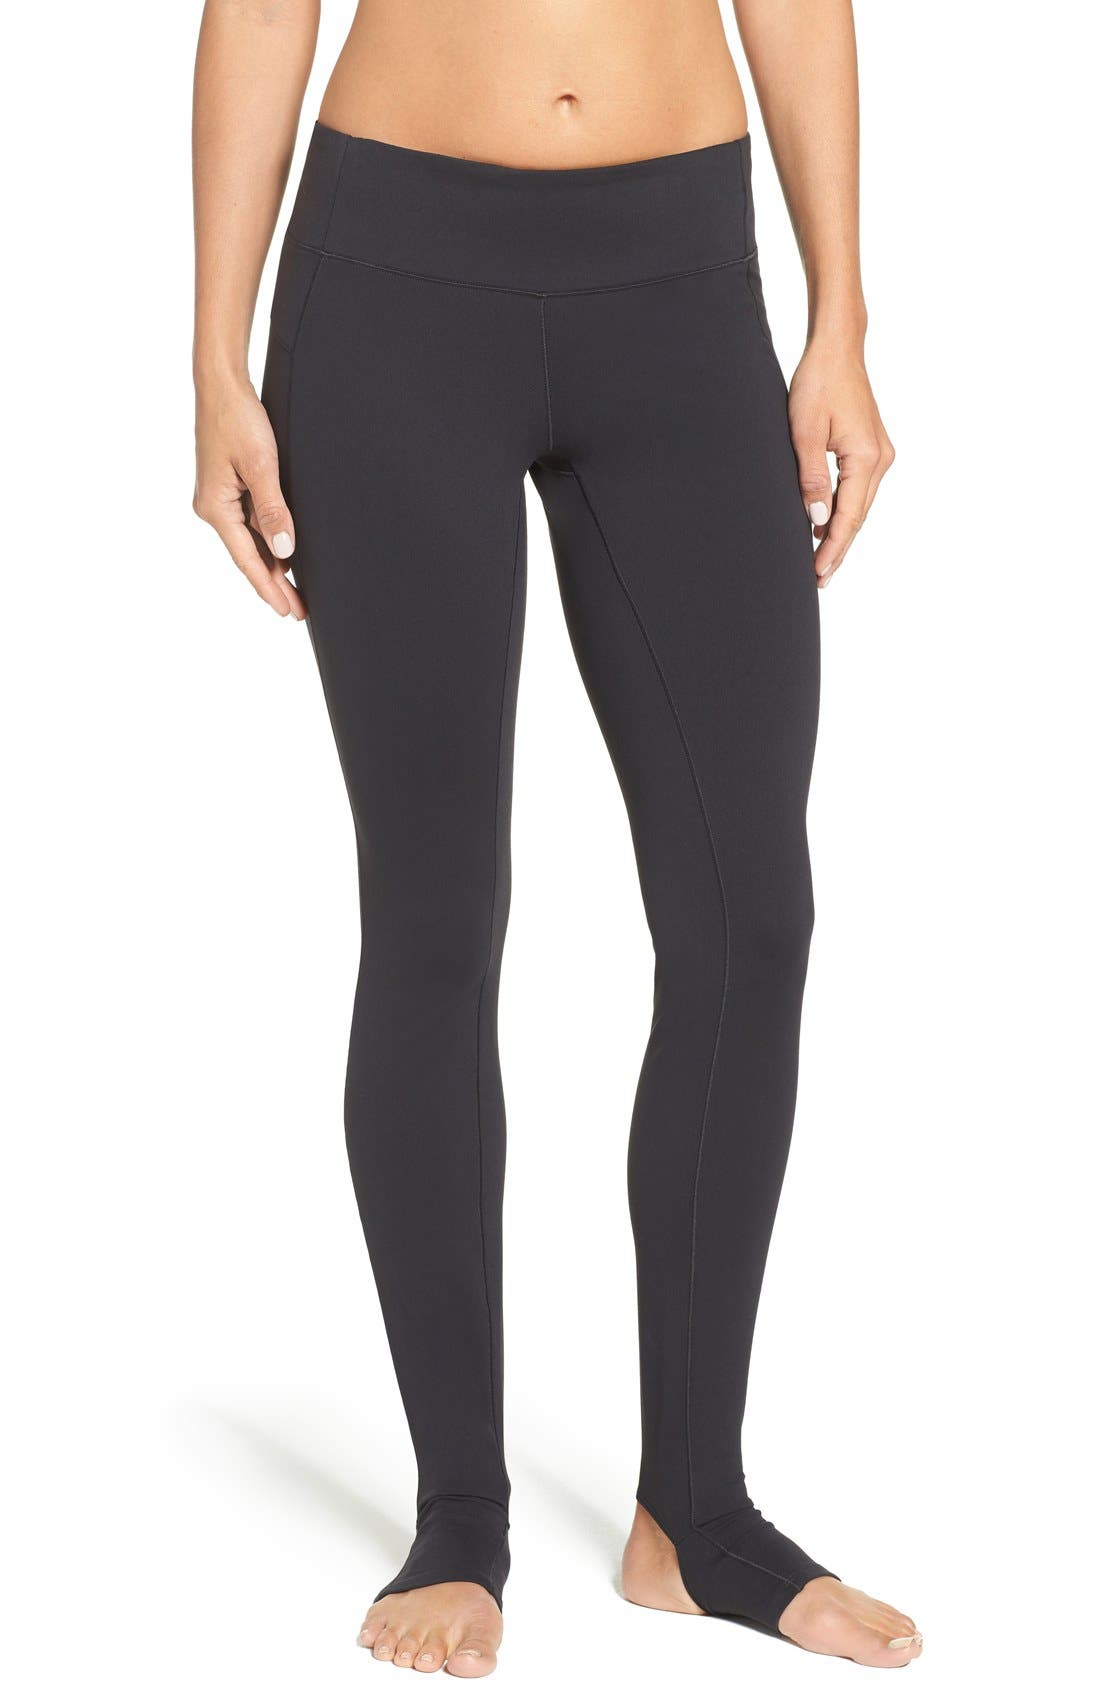 Main Image - New Balance Foiled Stirrup Tights